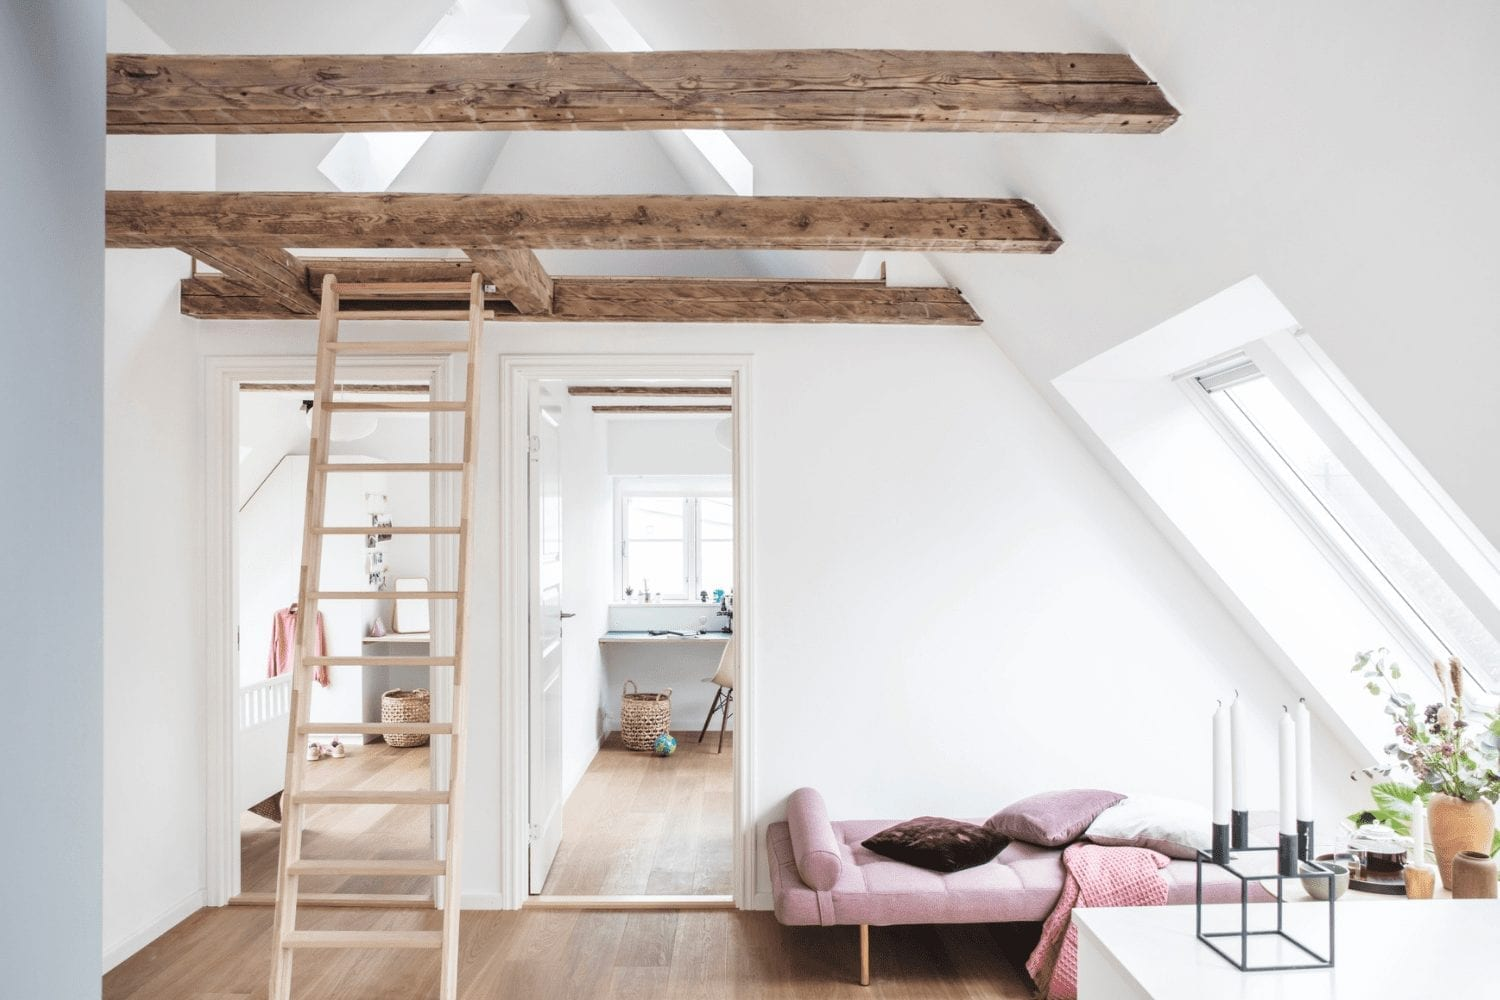 A beautiful white loft conversion with roof windows, a step ladder and two doorways to other rooms